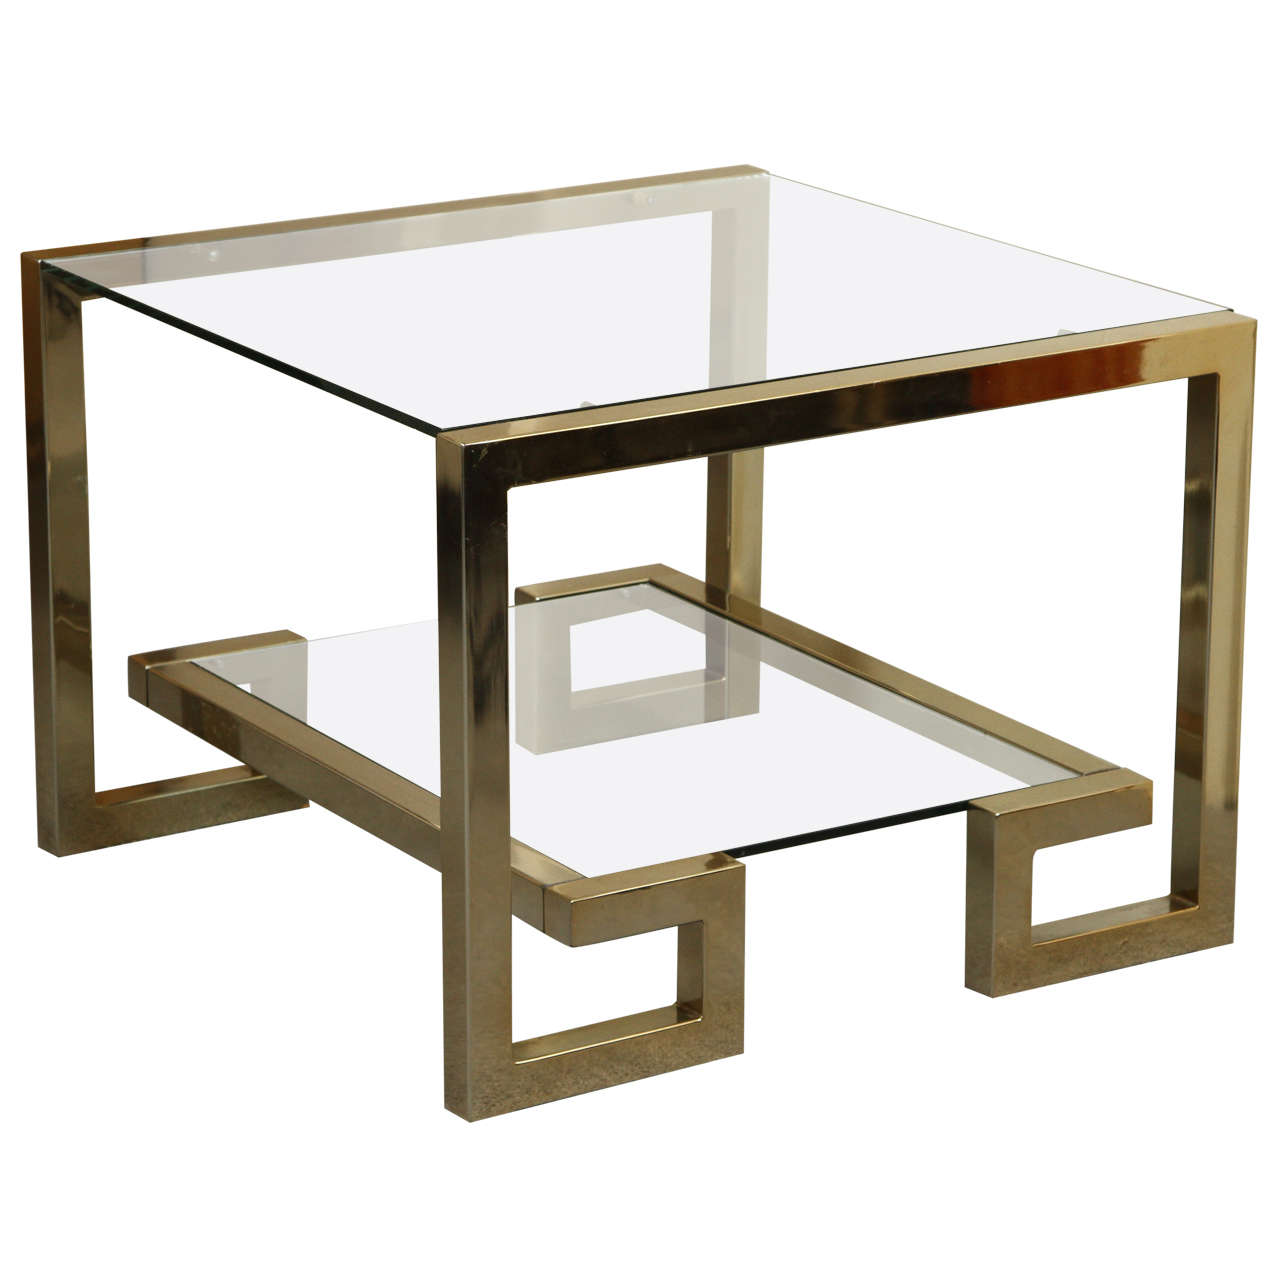 Stylish Greek Key Brass And Glass Coffee Table At 1stdibs